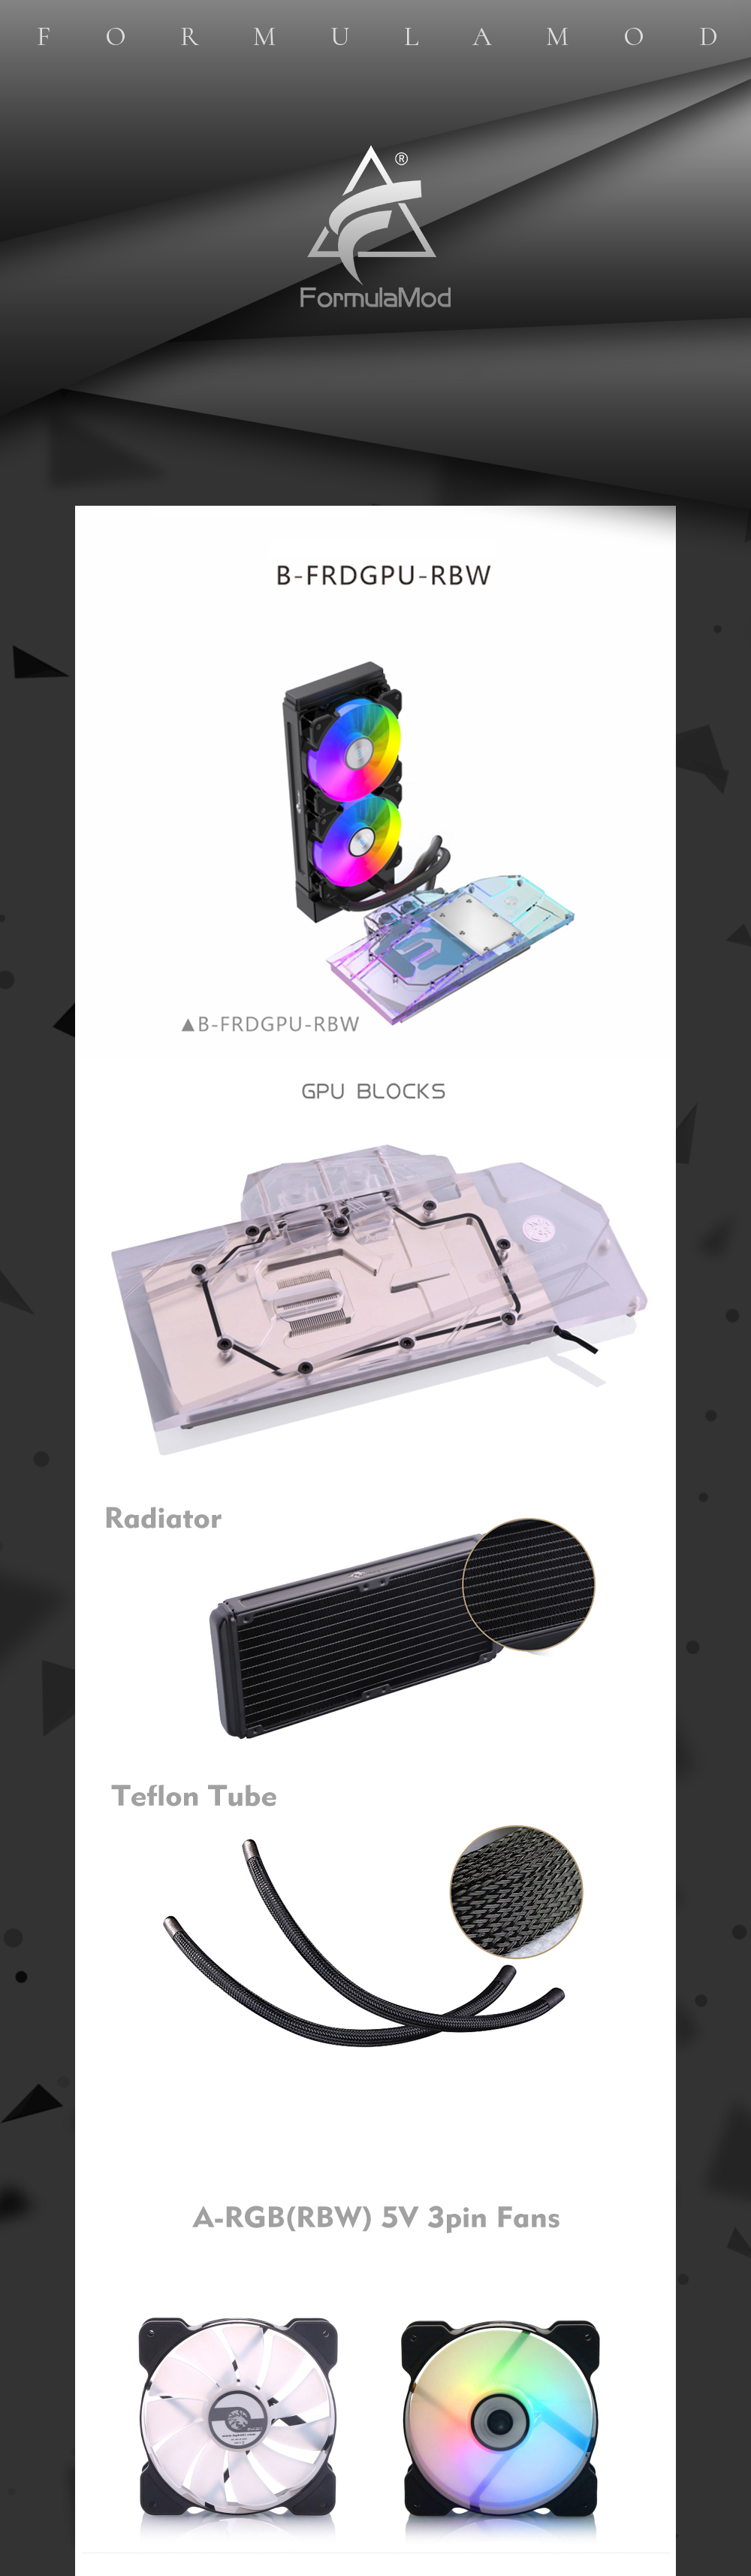 Integrated Type GPU Block With 240 Radiator Water Cooling System Aio Cooler For AMD/NVIDIA, B-FRDGPU-RBW